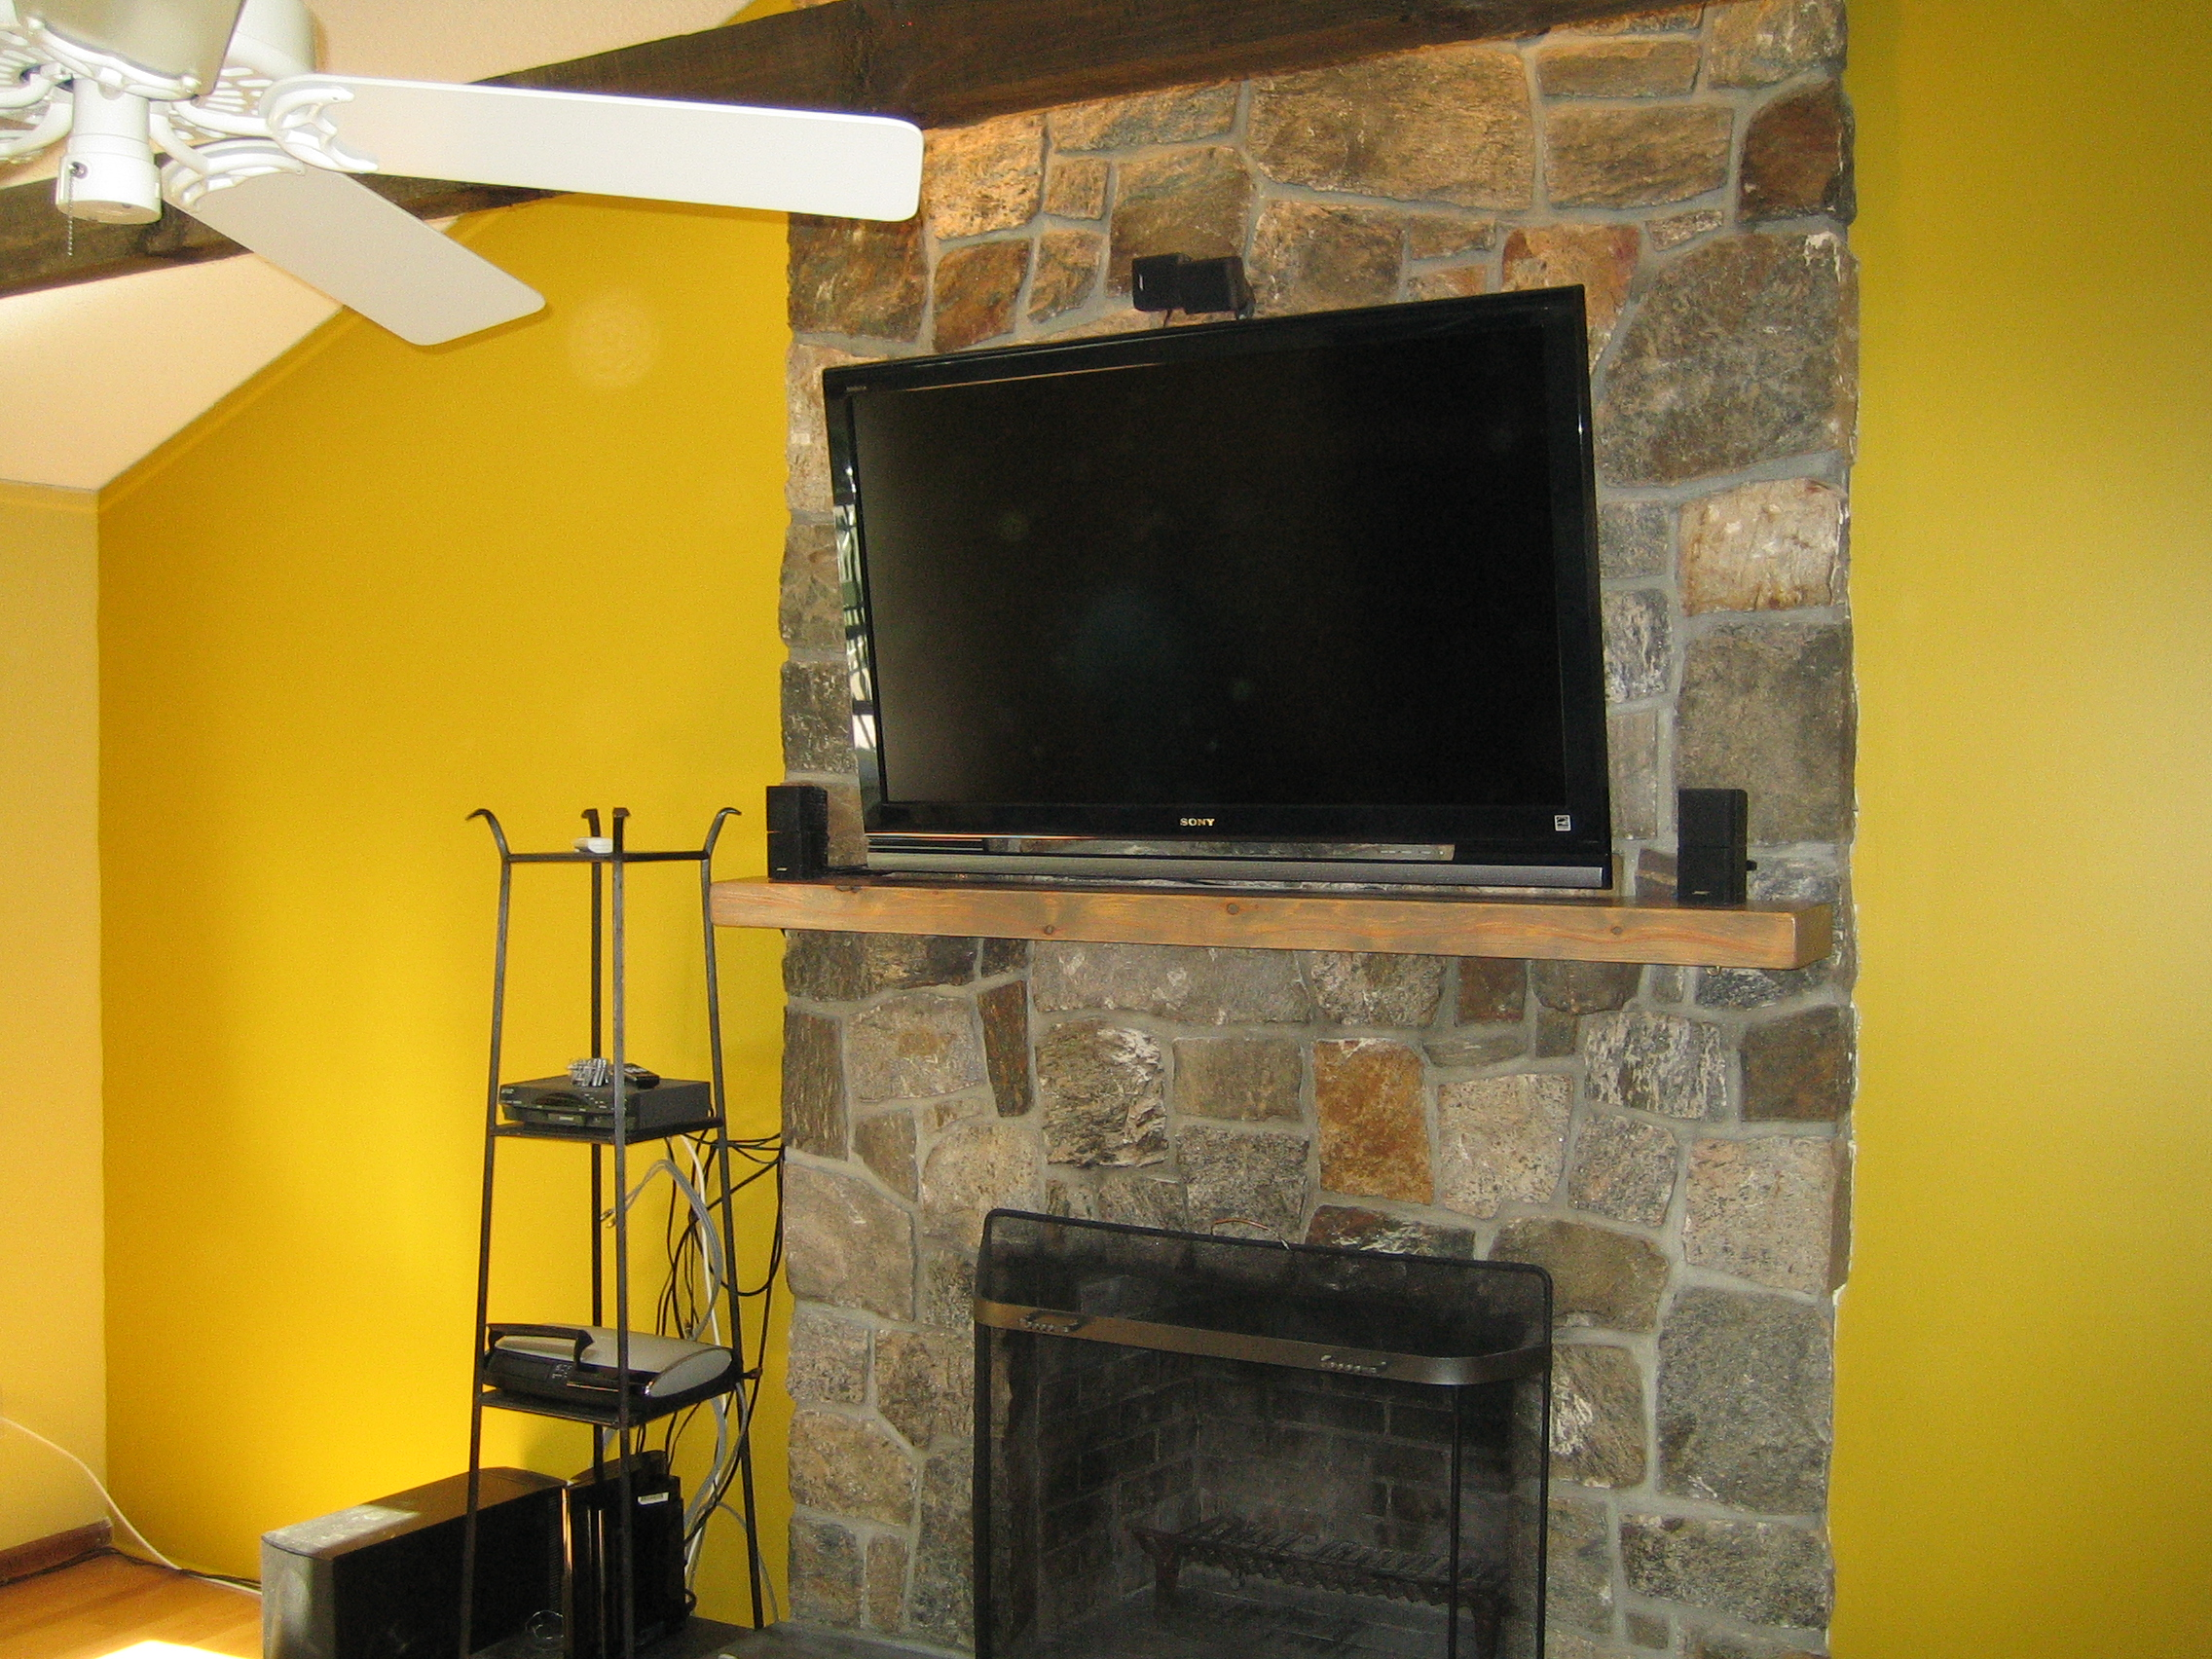 Photos Of Tv Mounted Over Fireplace Canaan Ct Mount Tv Above Fireplace Home Theater Installation